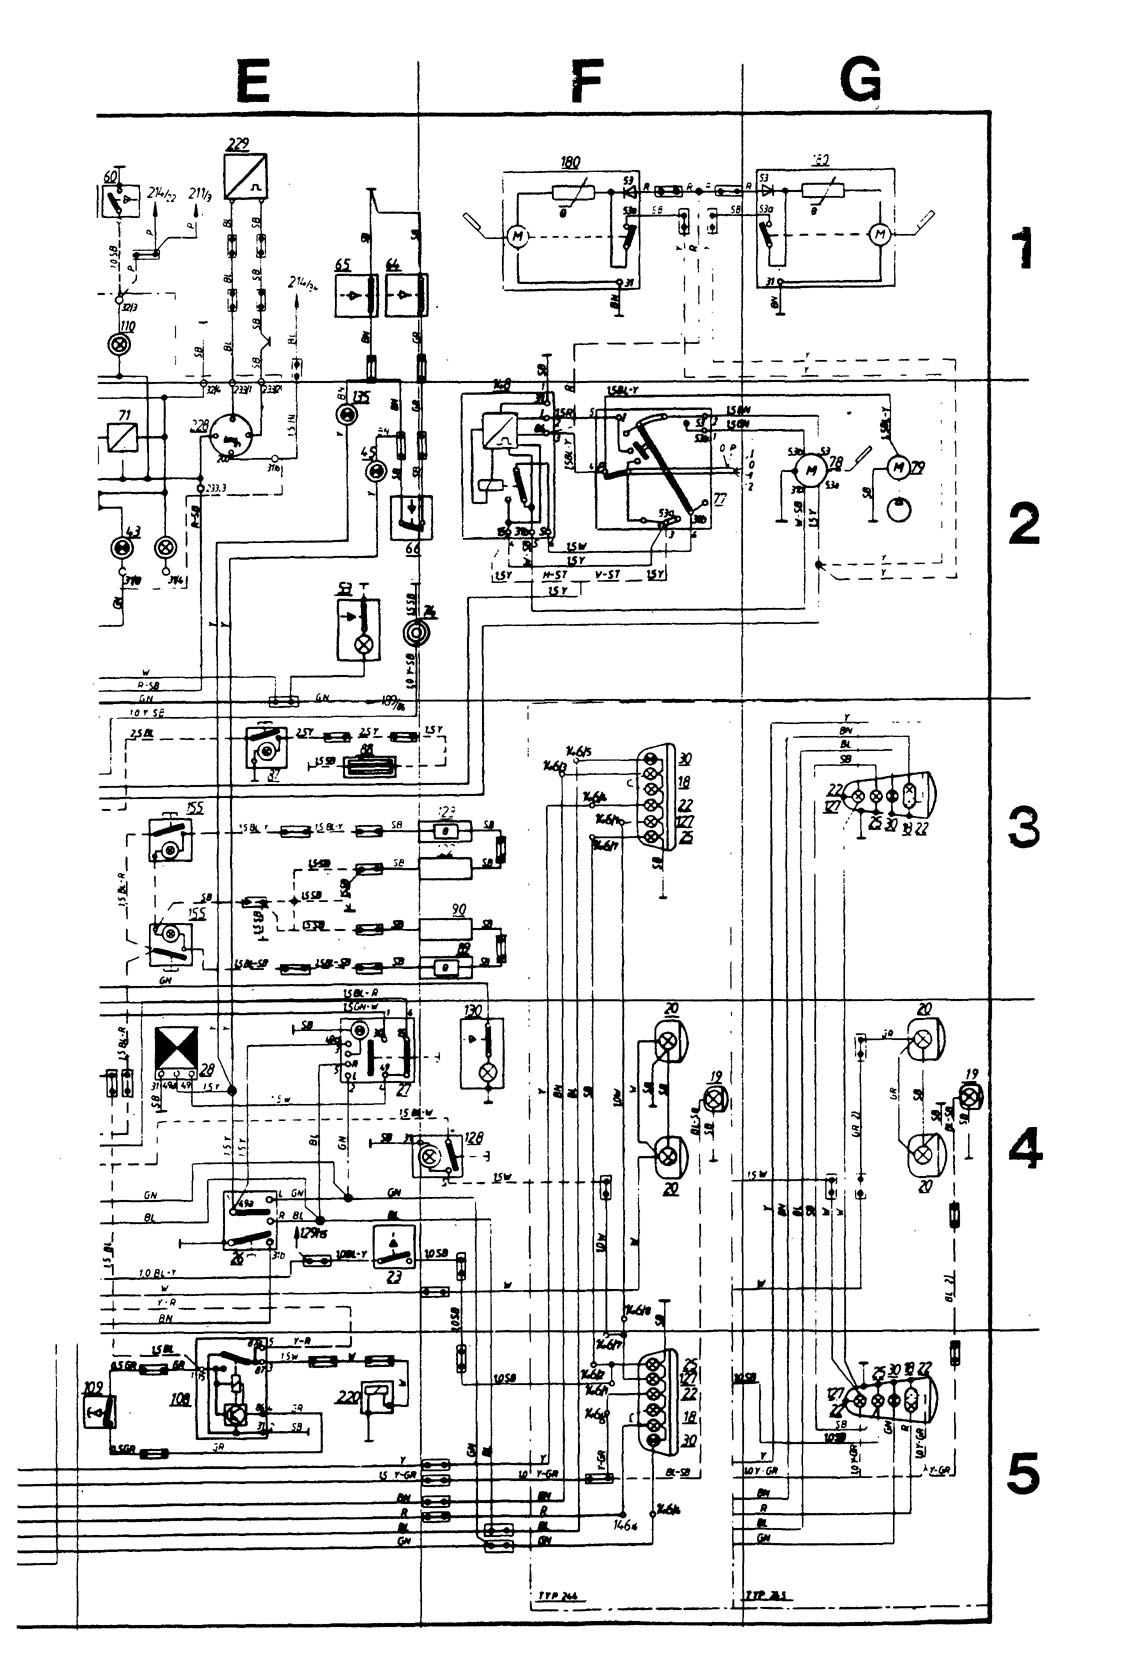 volvo 244  1989  wiring diagrams instrumentation 2015 western star a c wiring diagram 2015 western star a c wiring diagram 2015 western star a c wiring diagram 2015 western star a c wiring diagram